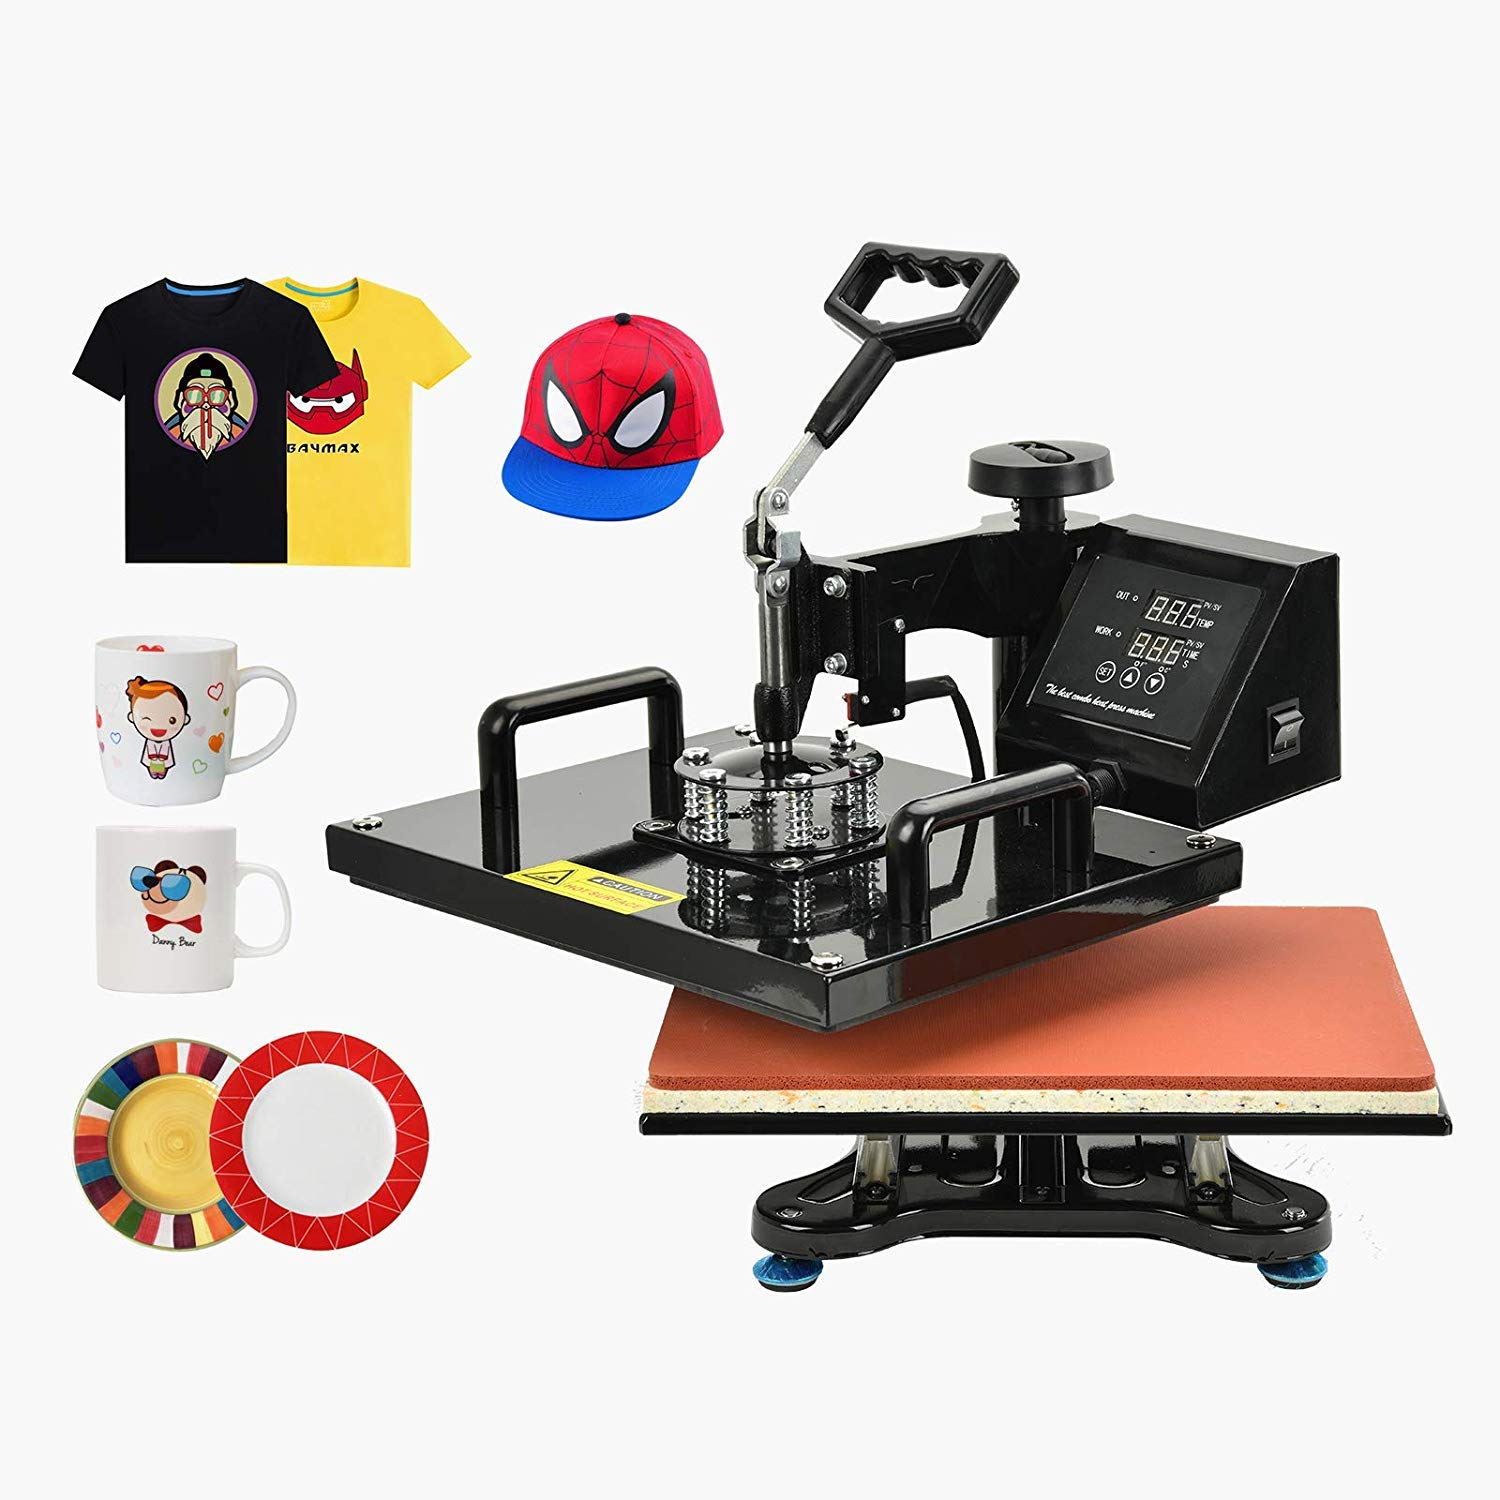 Nurxiovo 8 in 1 Heat Press Machine Swing Away Digital Sublimation Heat Pressing Transfer Machine for T-Shirt//Mug//Hat Plate//Cap 12x15